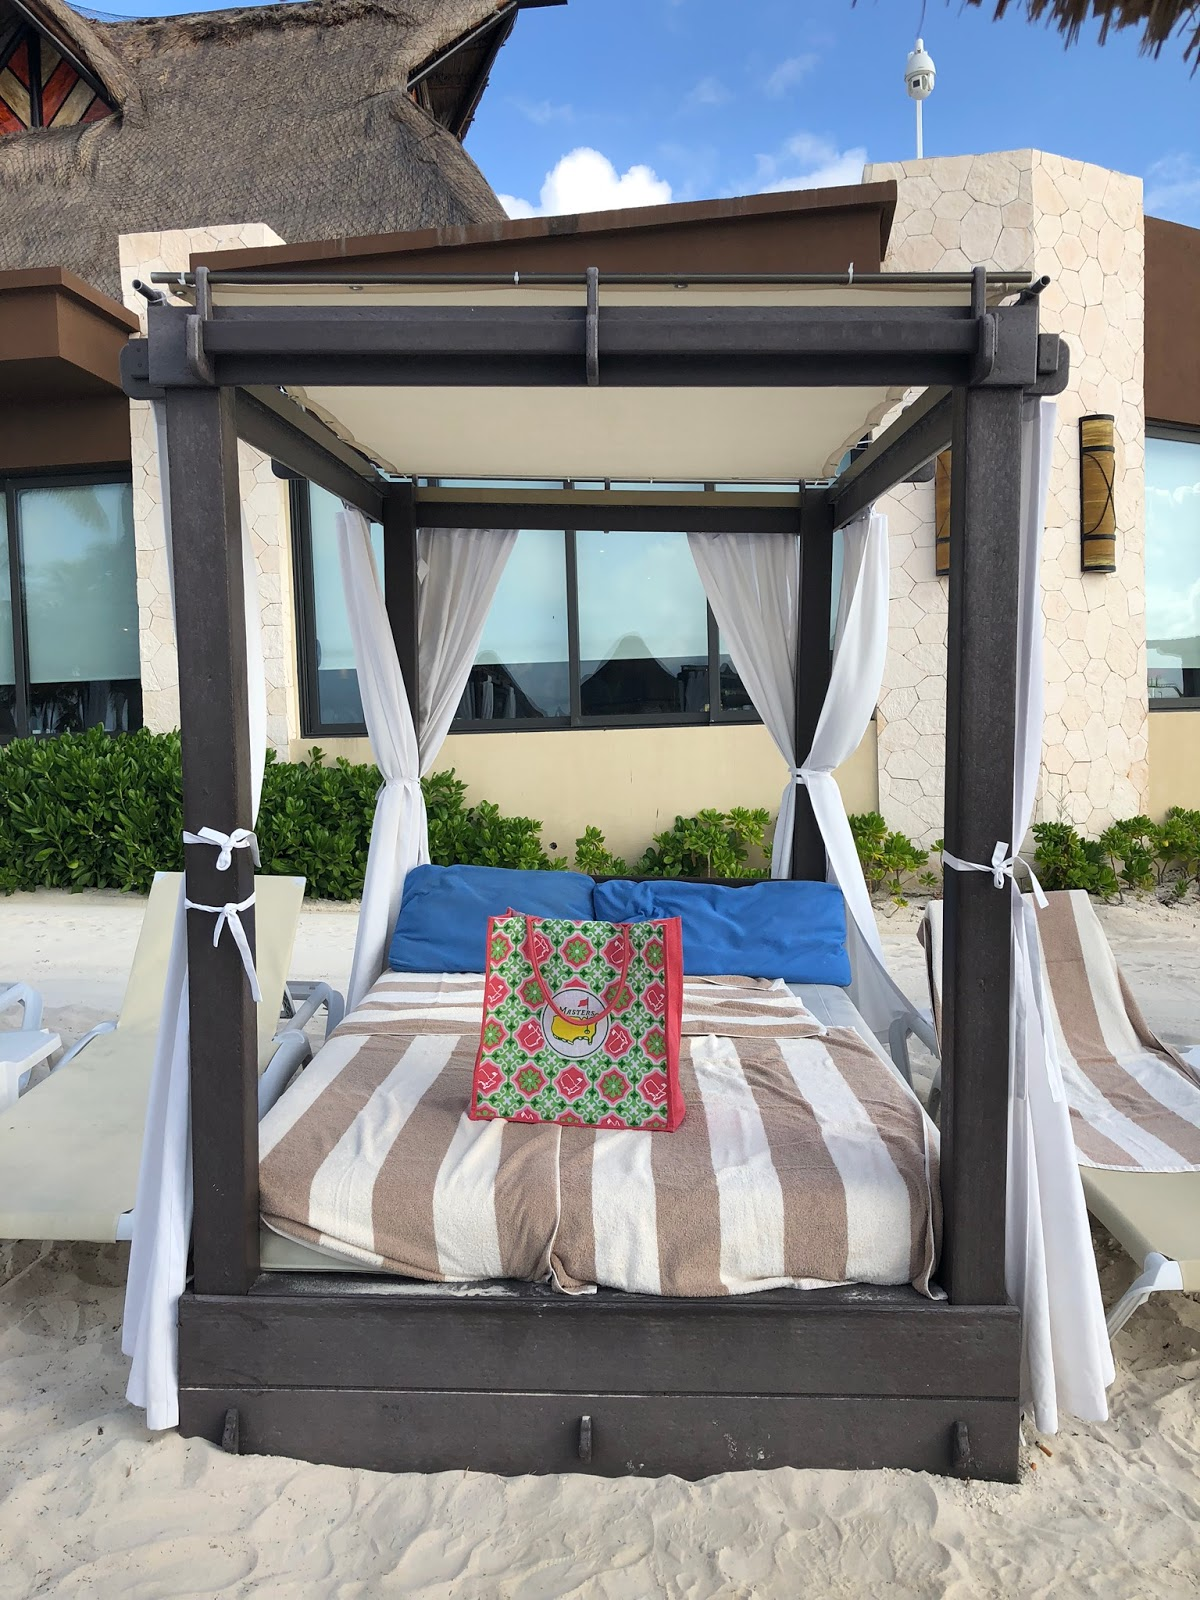 a four poster bed is made up on the beach with towels and a beach bag on top of it